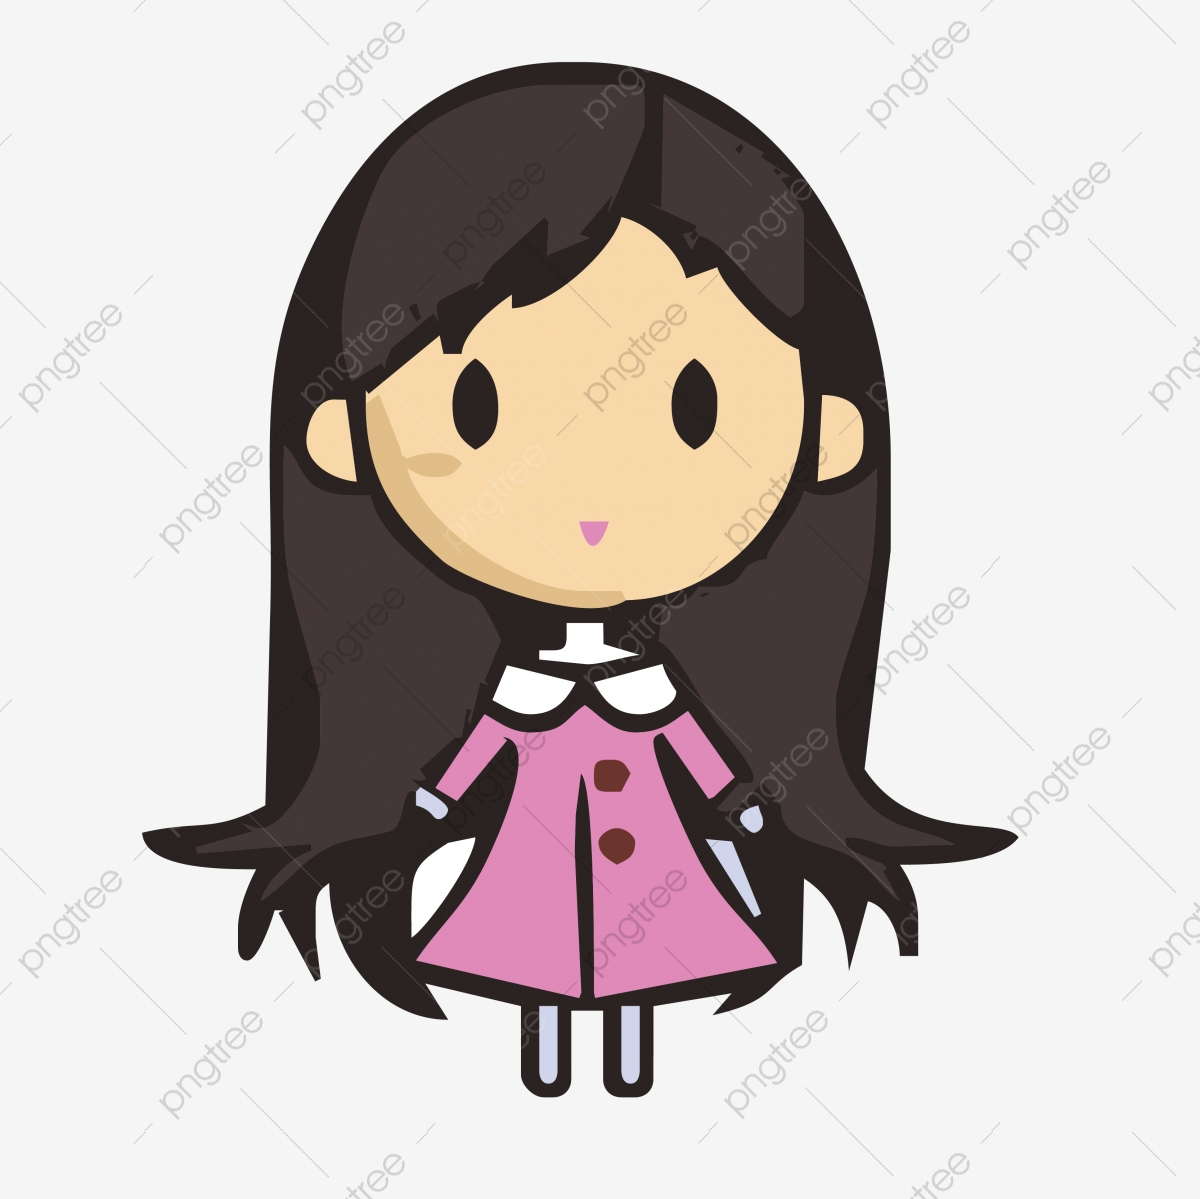 Cute Child Cartoon Character Lovely Little Girl Wearing A Pink Skirt Happy Hand Painted Children Png And Vector With Transparent Background For Free Download